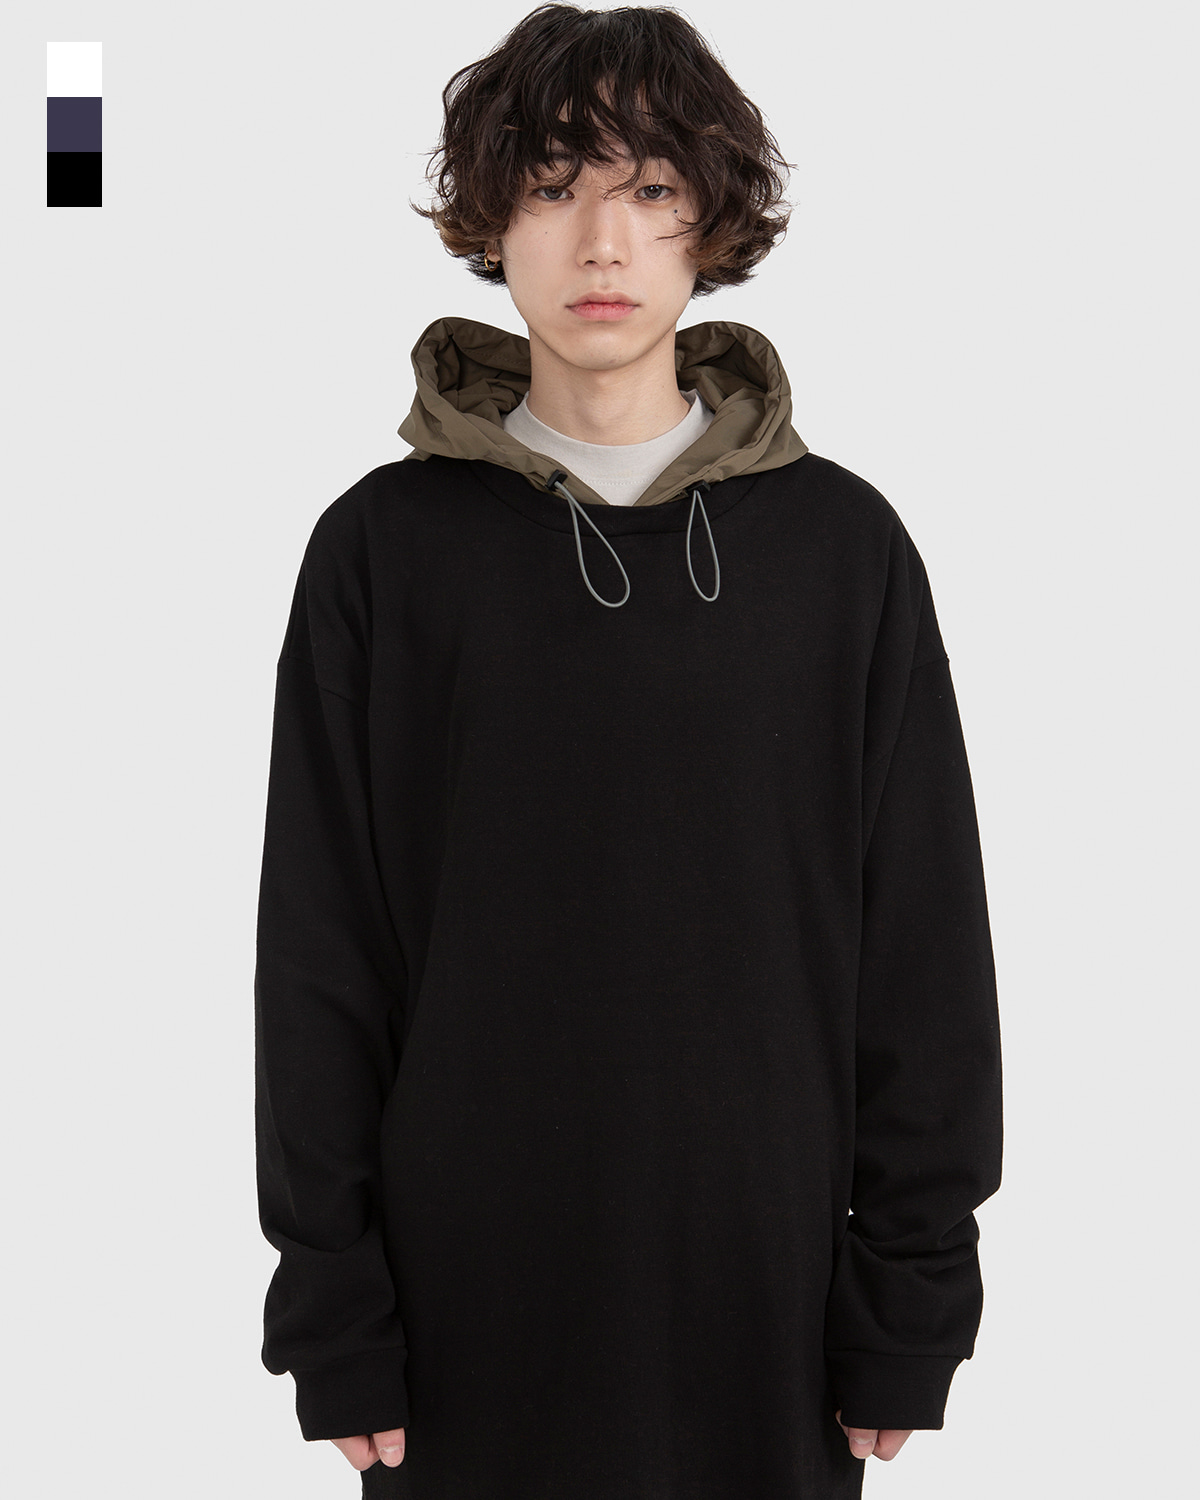 raucohouse-RAGE PULL OVER HOODIE - RAUCO HOUSE♡韓國男裝上衣